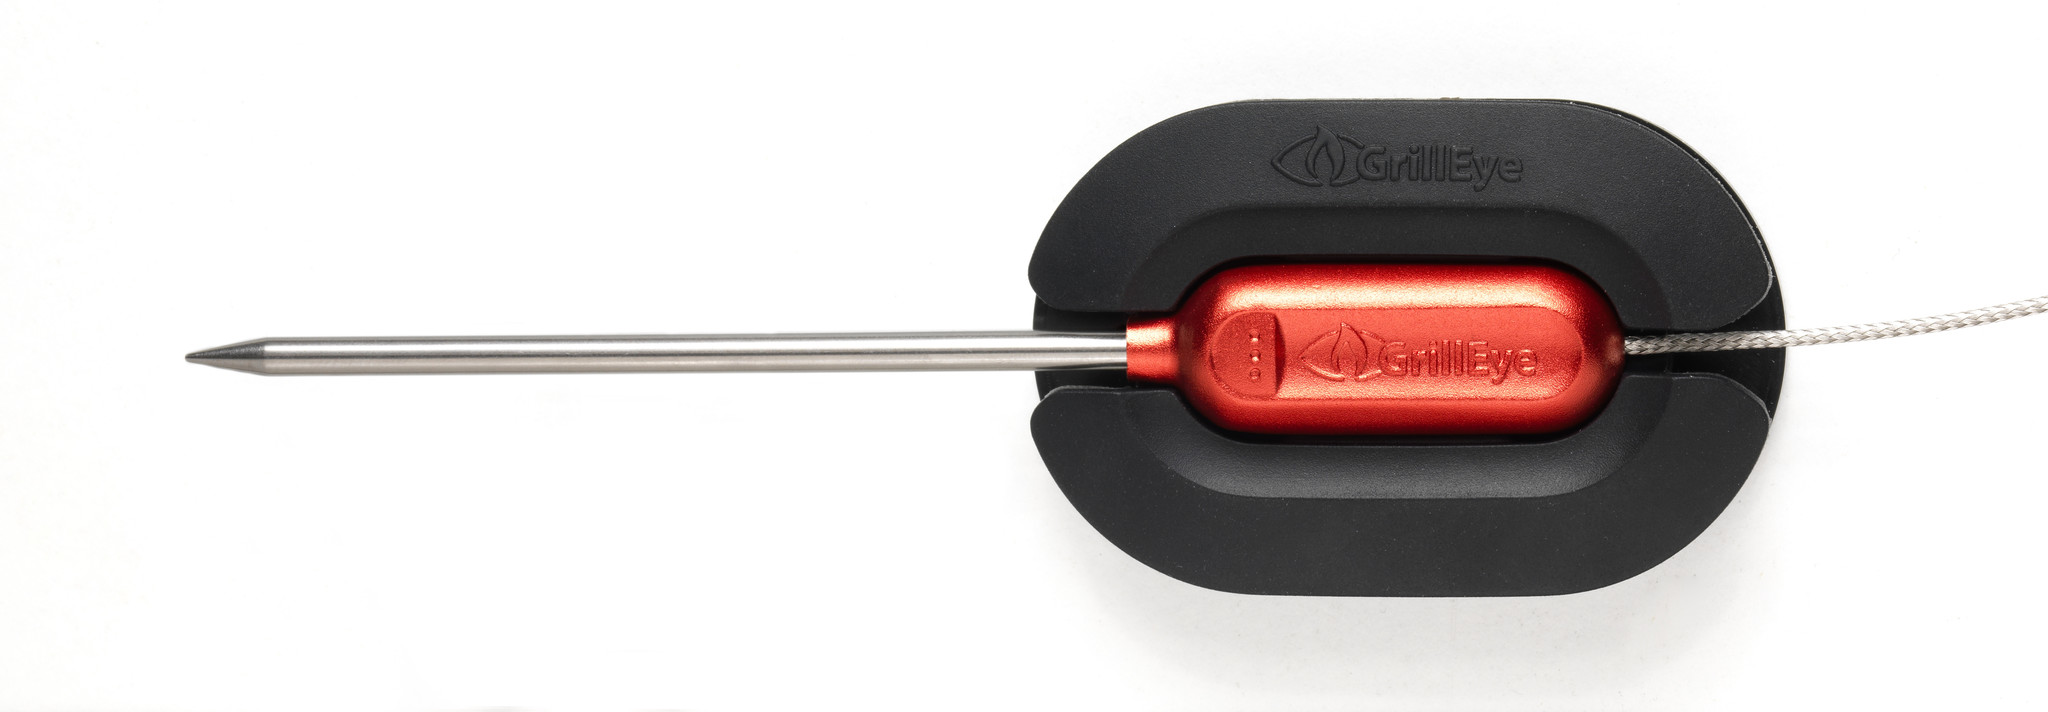 GrillEye Pro + bluetooth/wifi vlees -en bbq thermometer